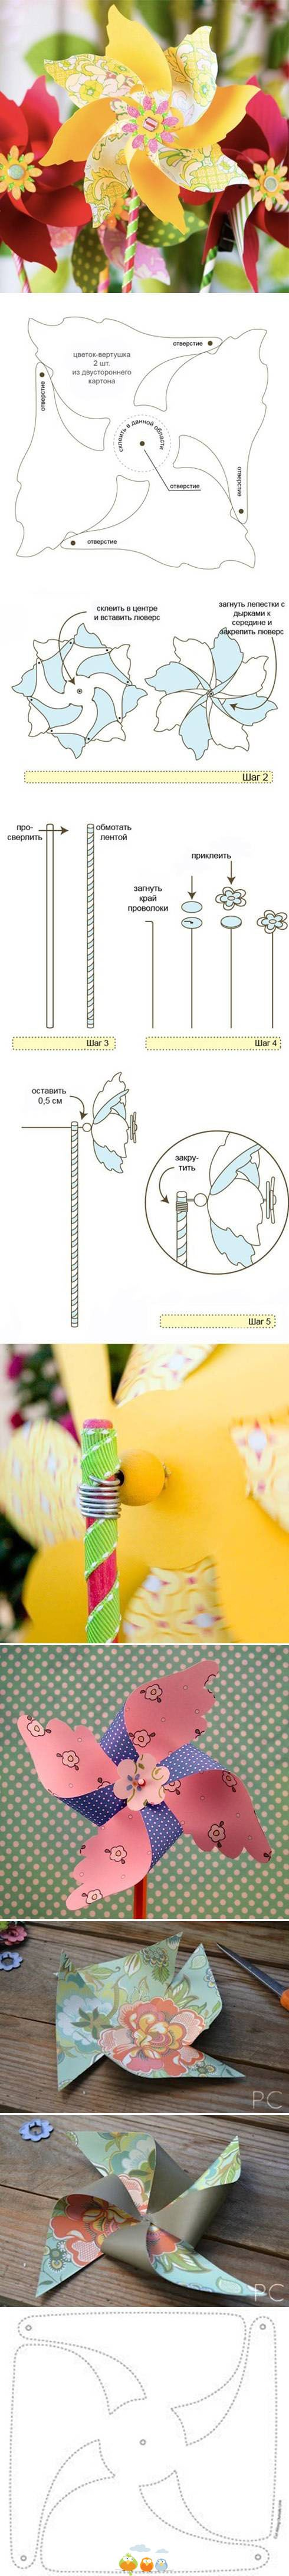 DIY Double Pinwheel - Visual step-by-step only, unless you can read this language. But it's sort-of self explanatory.